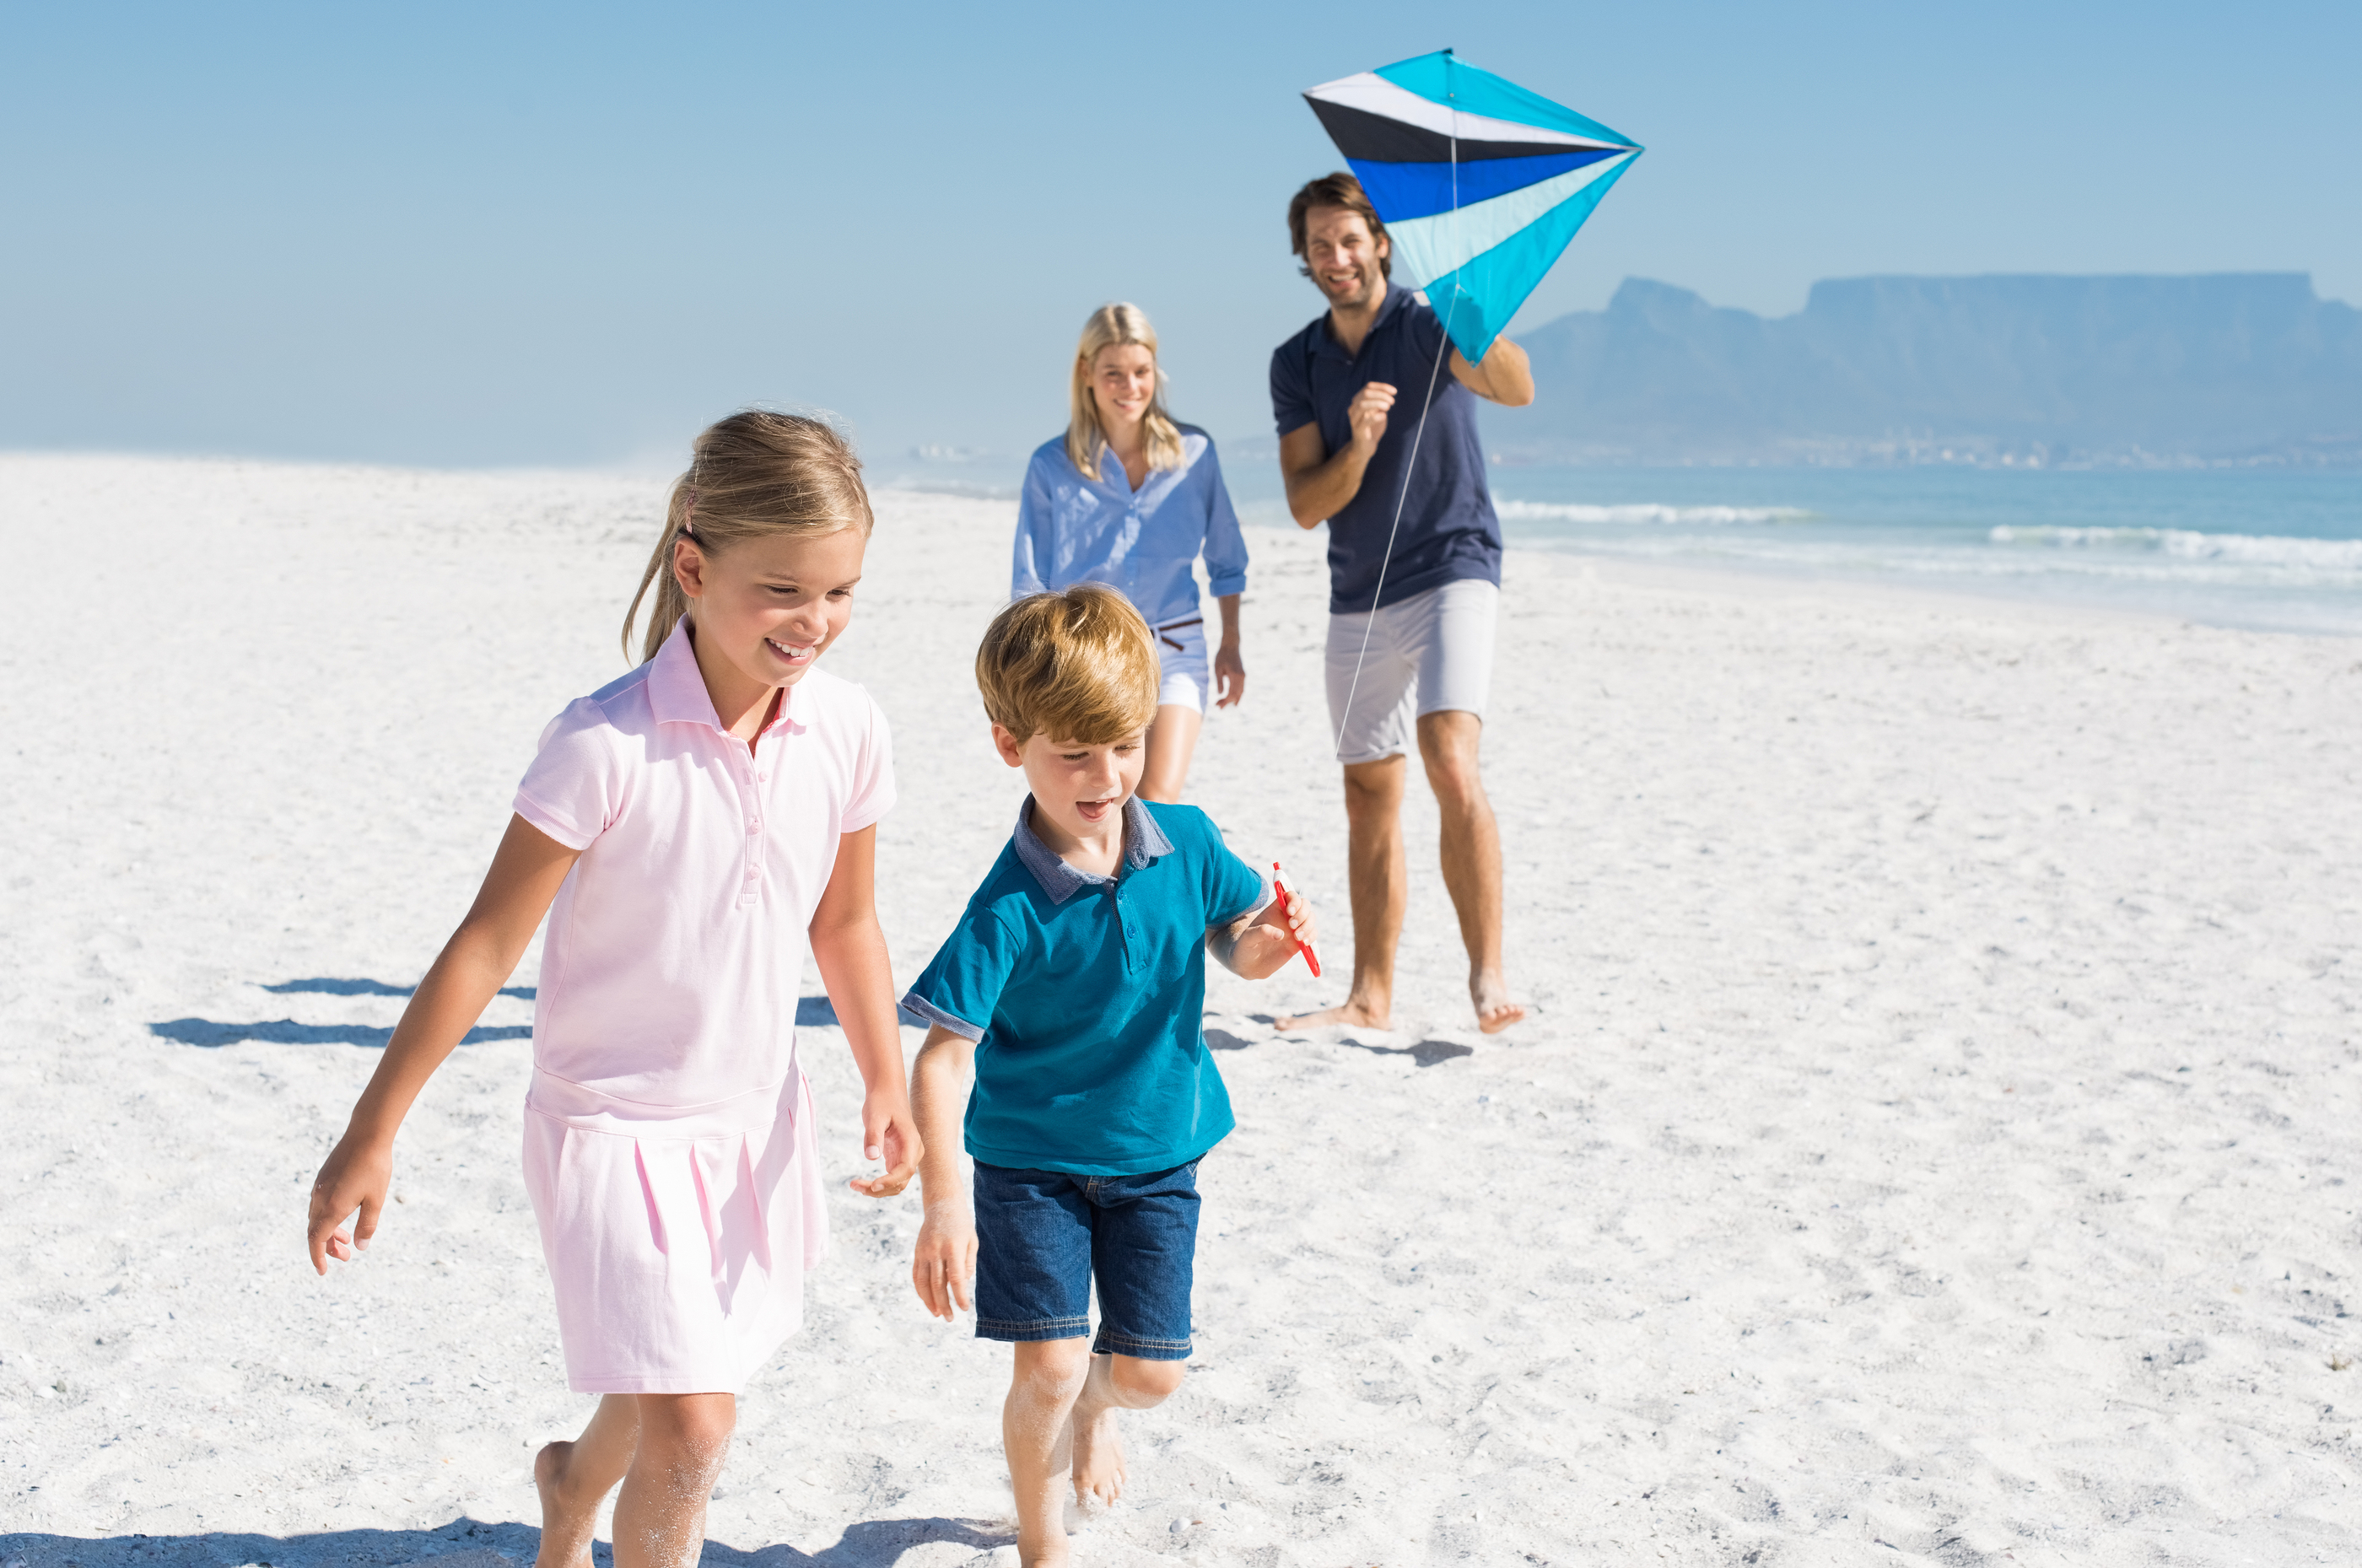 Happy family running at beach with blue kite. Family playing wit